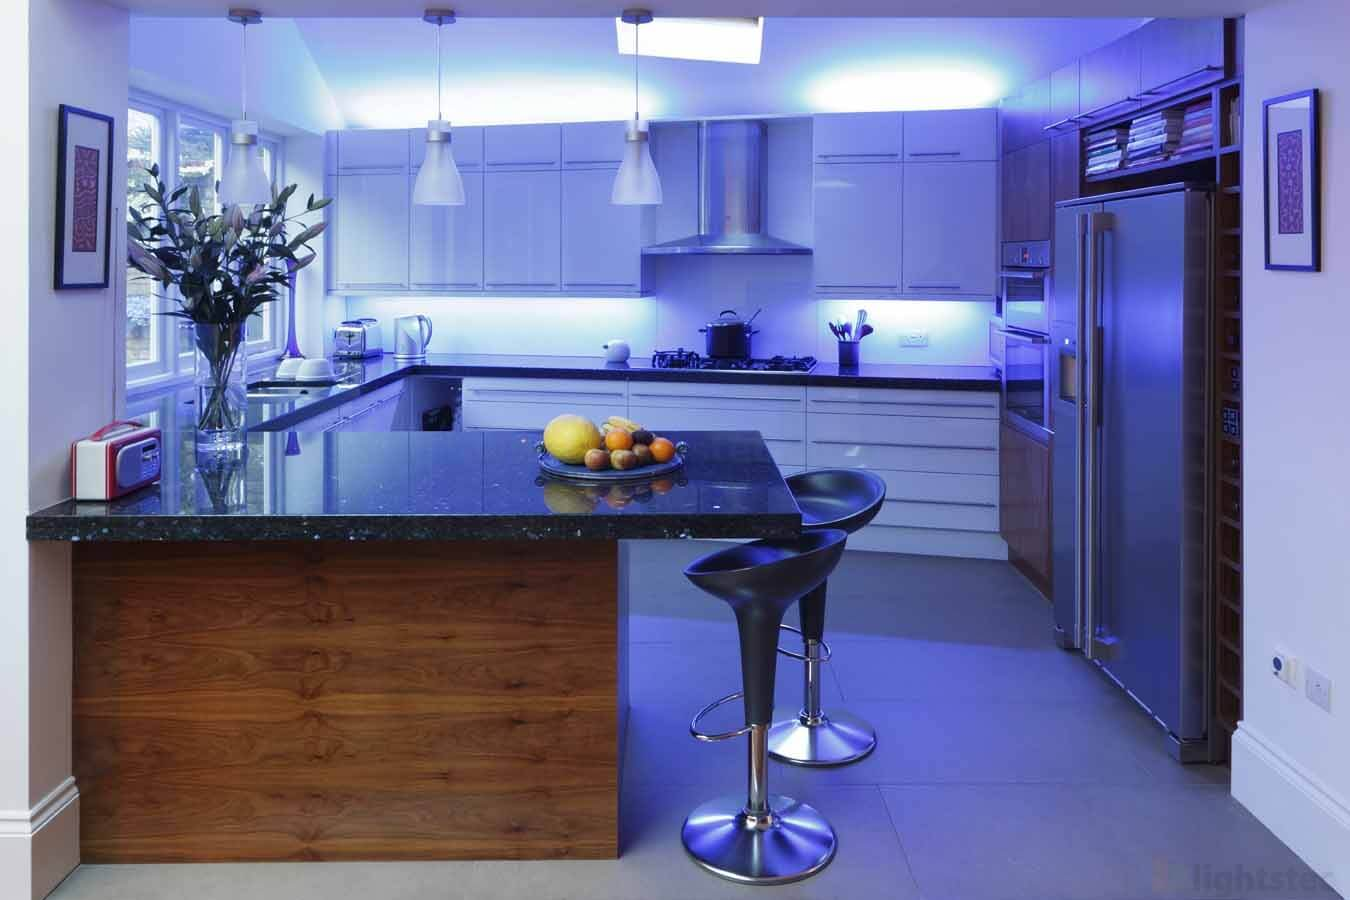 lightstec led strip light using for kitchen